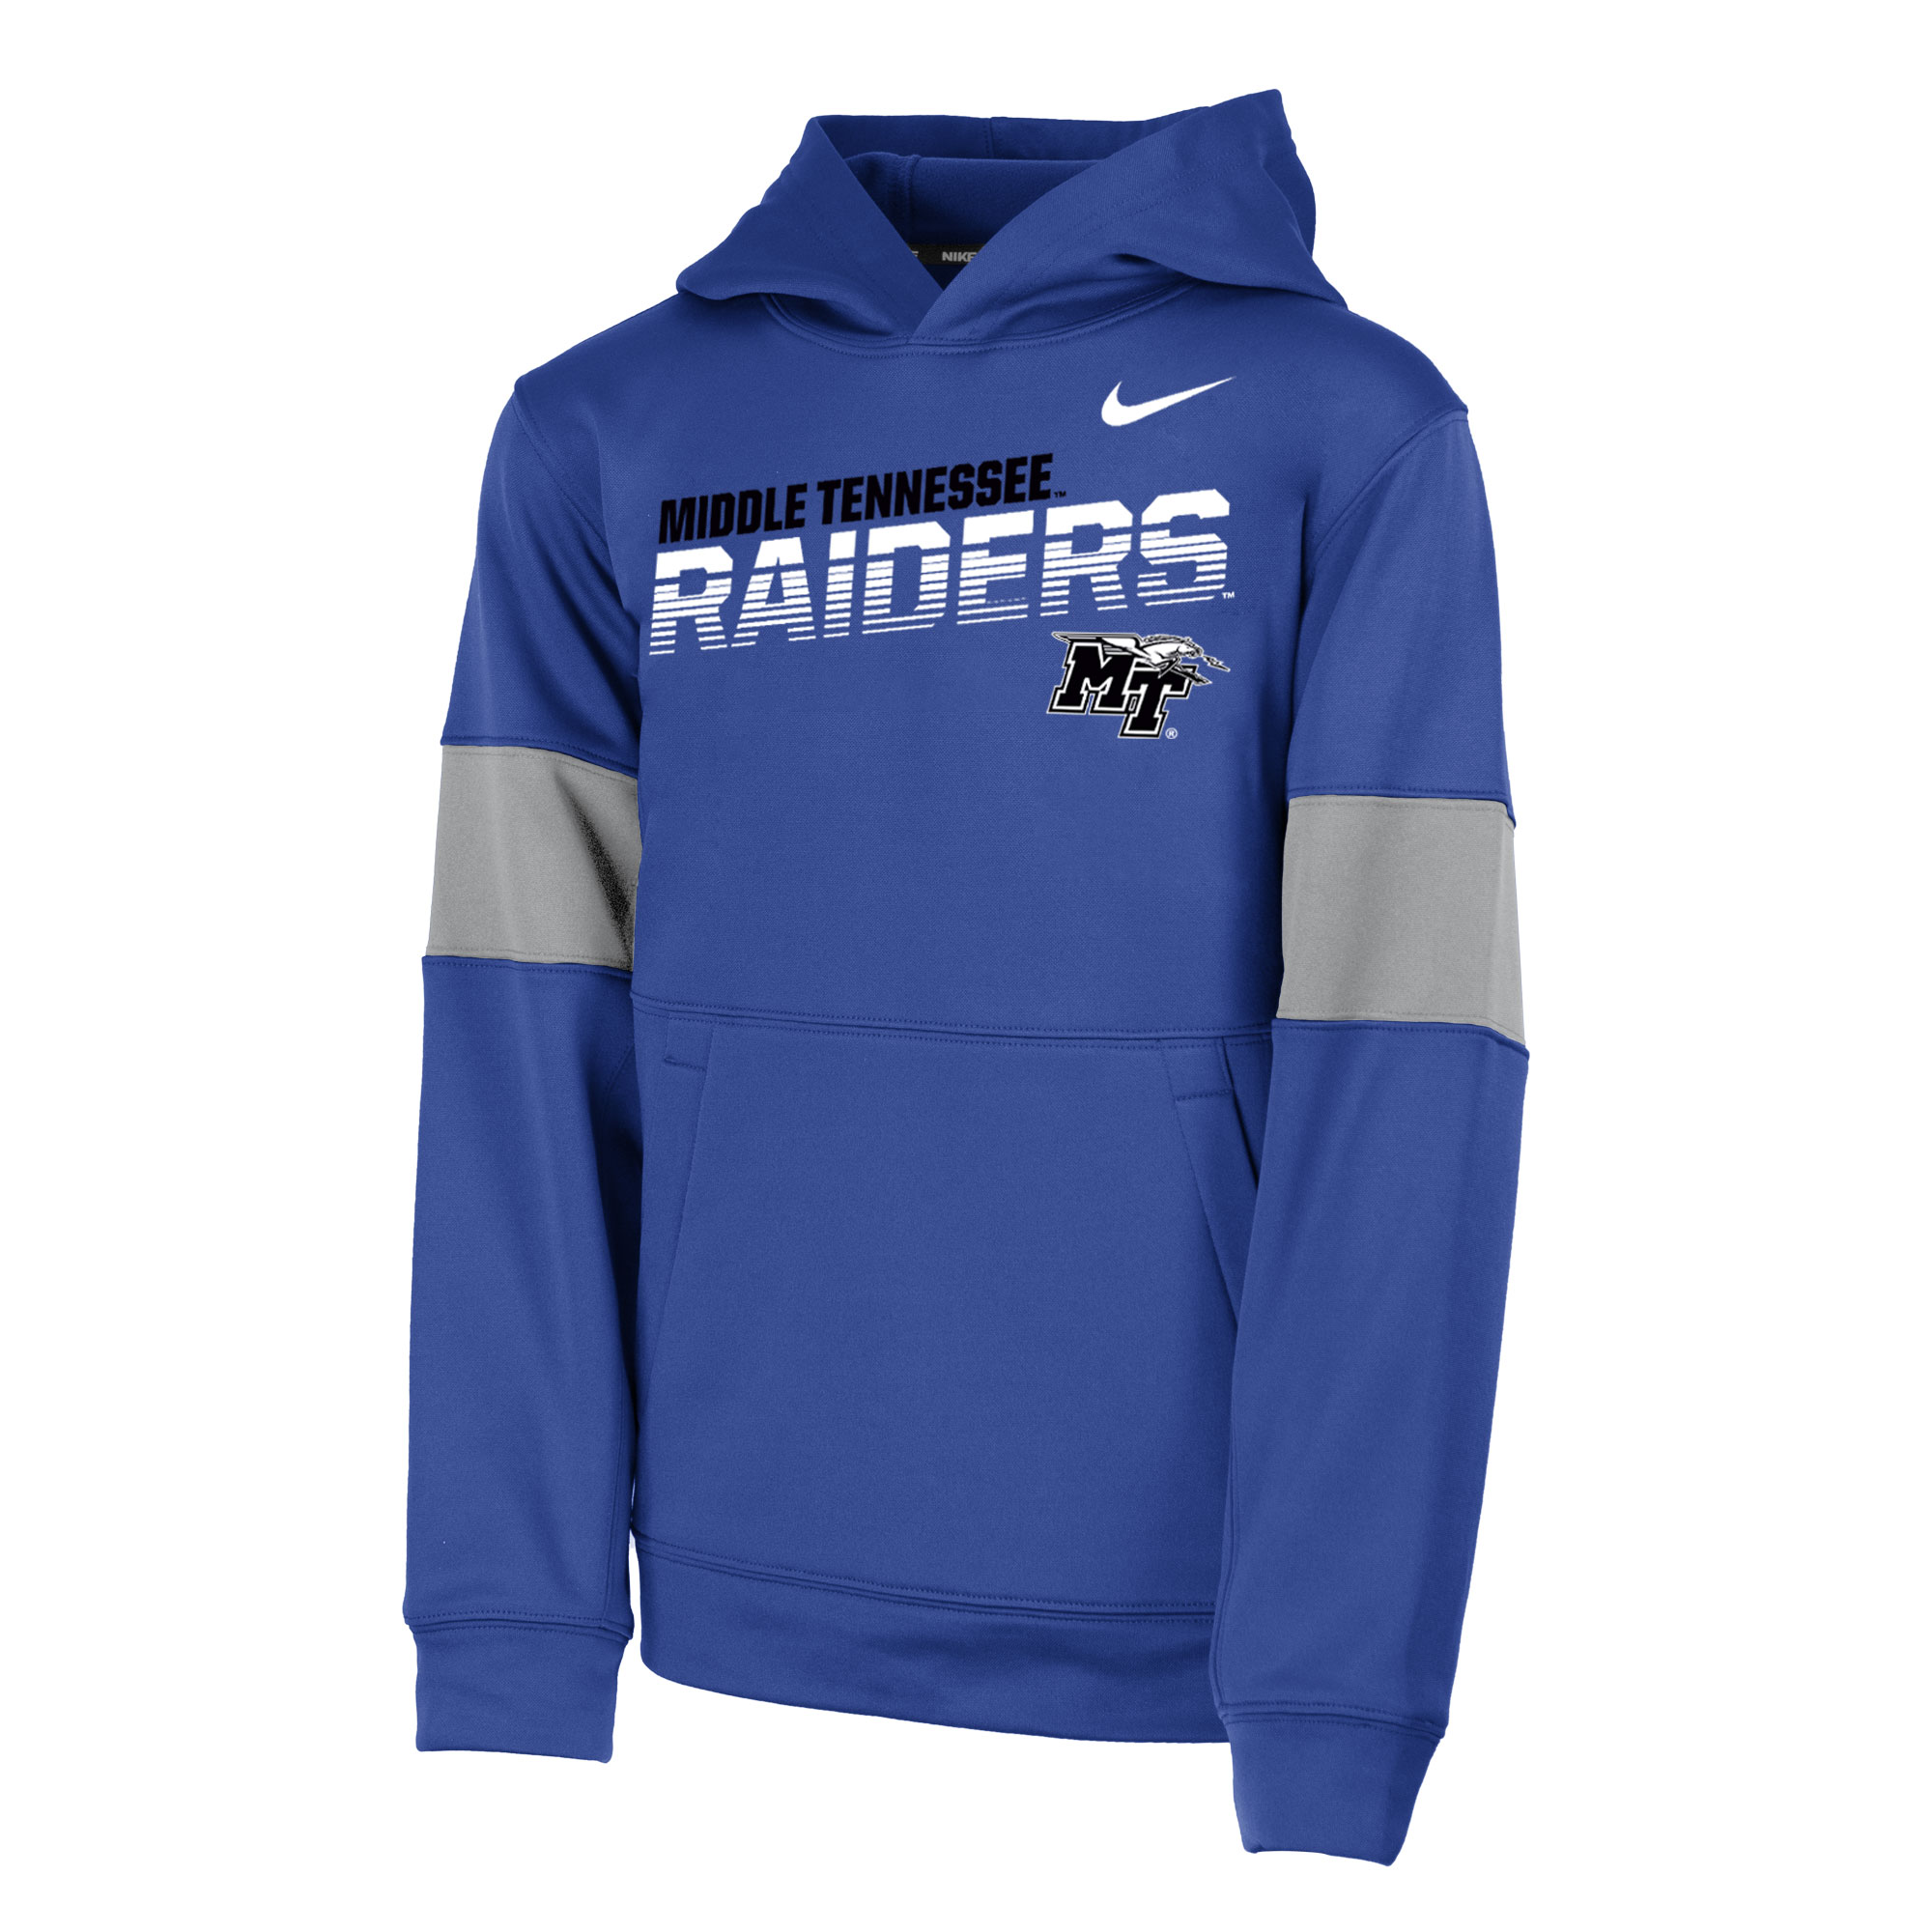 Middle Tennessee Raiders Therma PO Nike® Hoodie